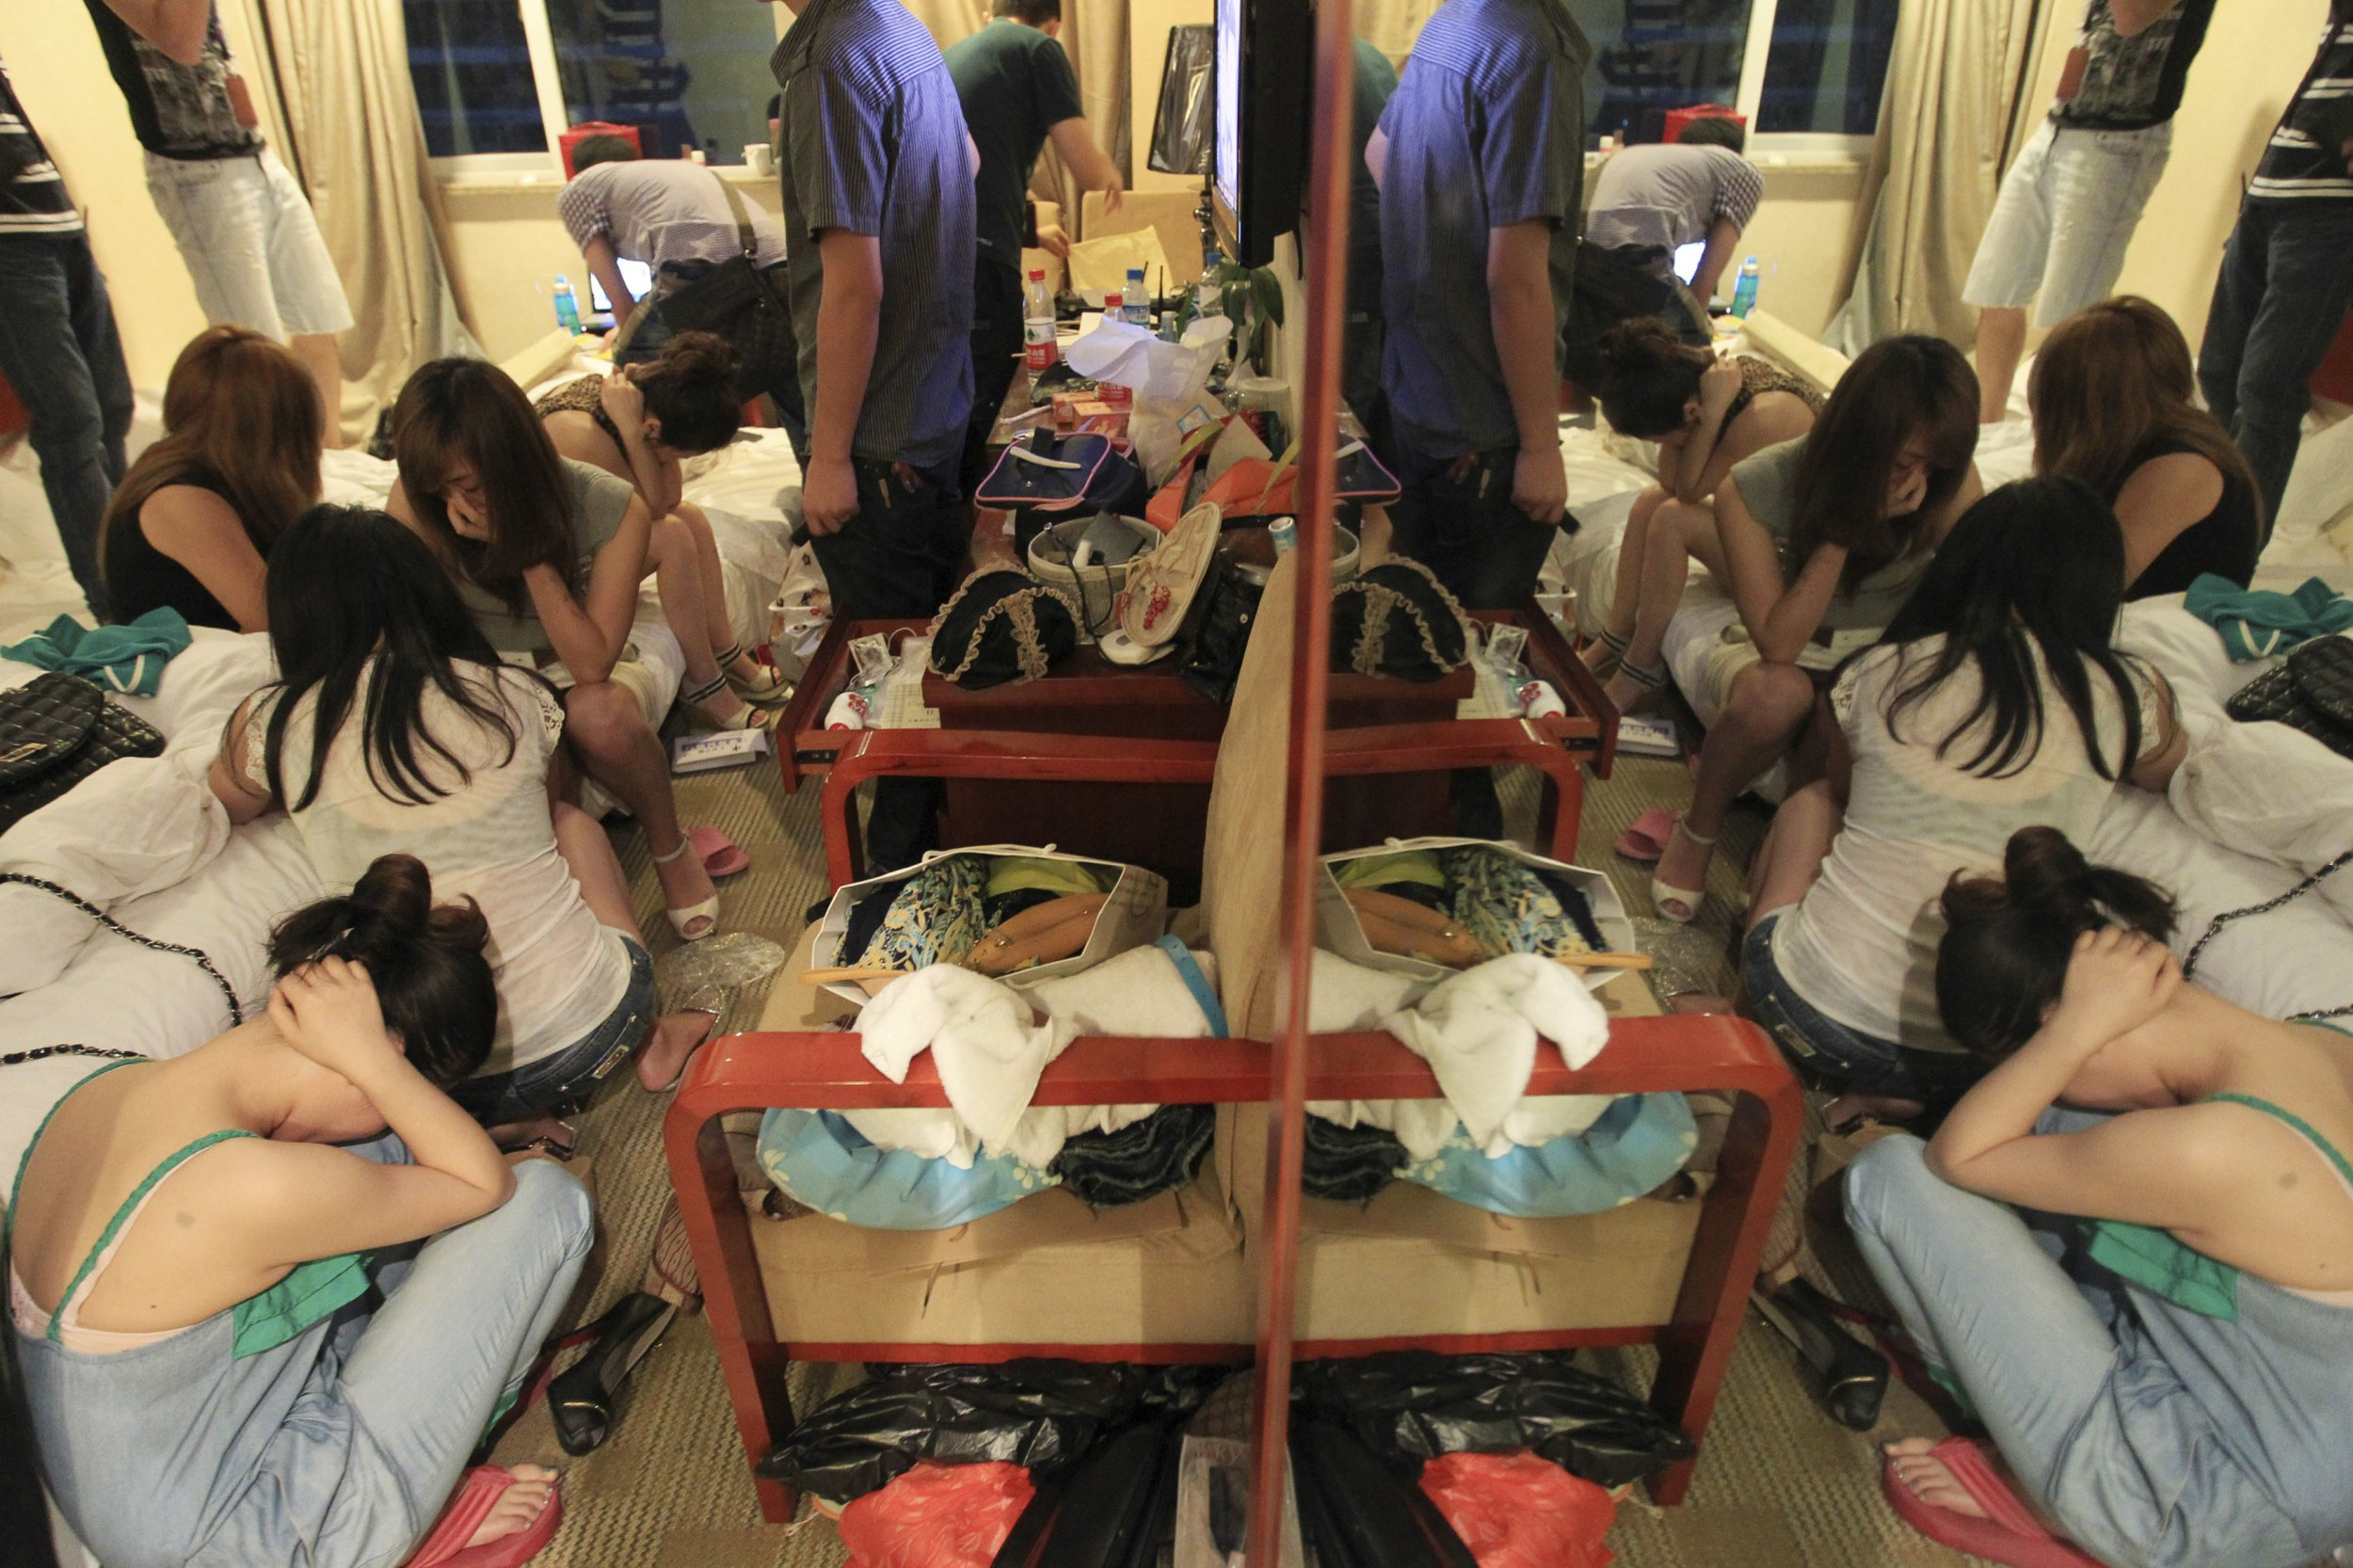 Women hide faces during China crackdown prostitutes